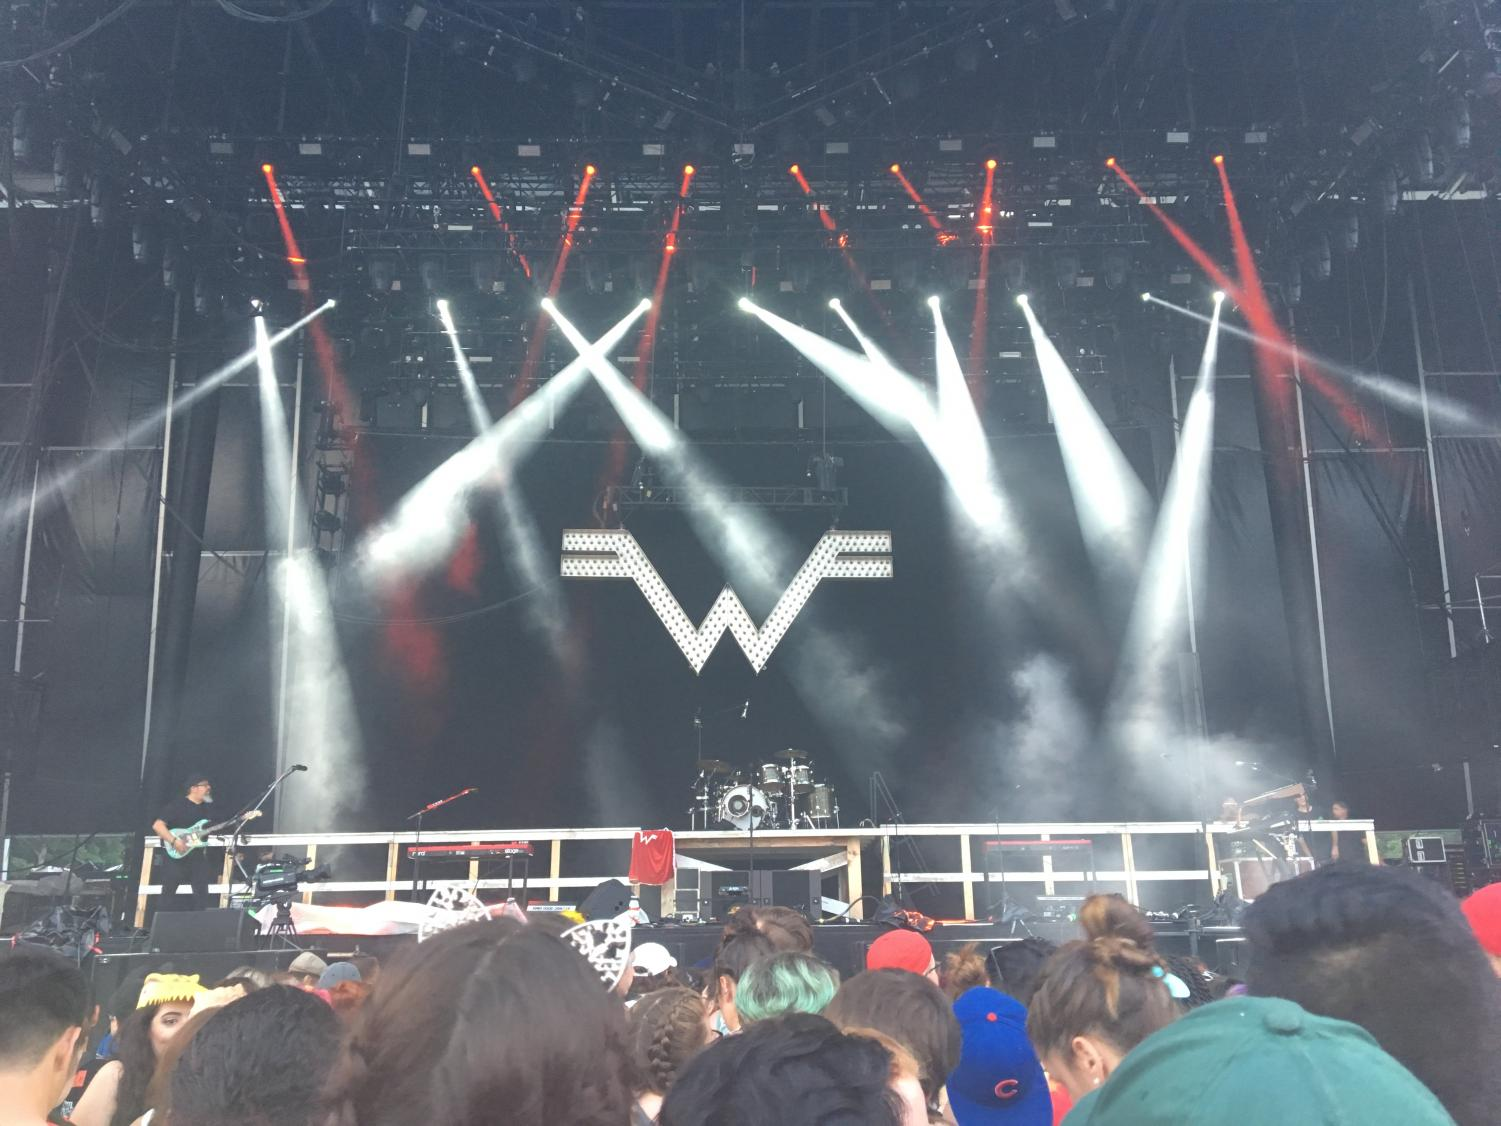 The Main Stage at Firefly before Weezer was going to perform.